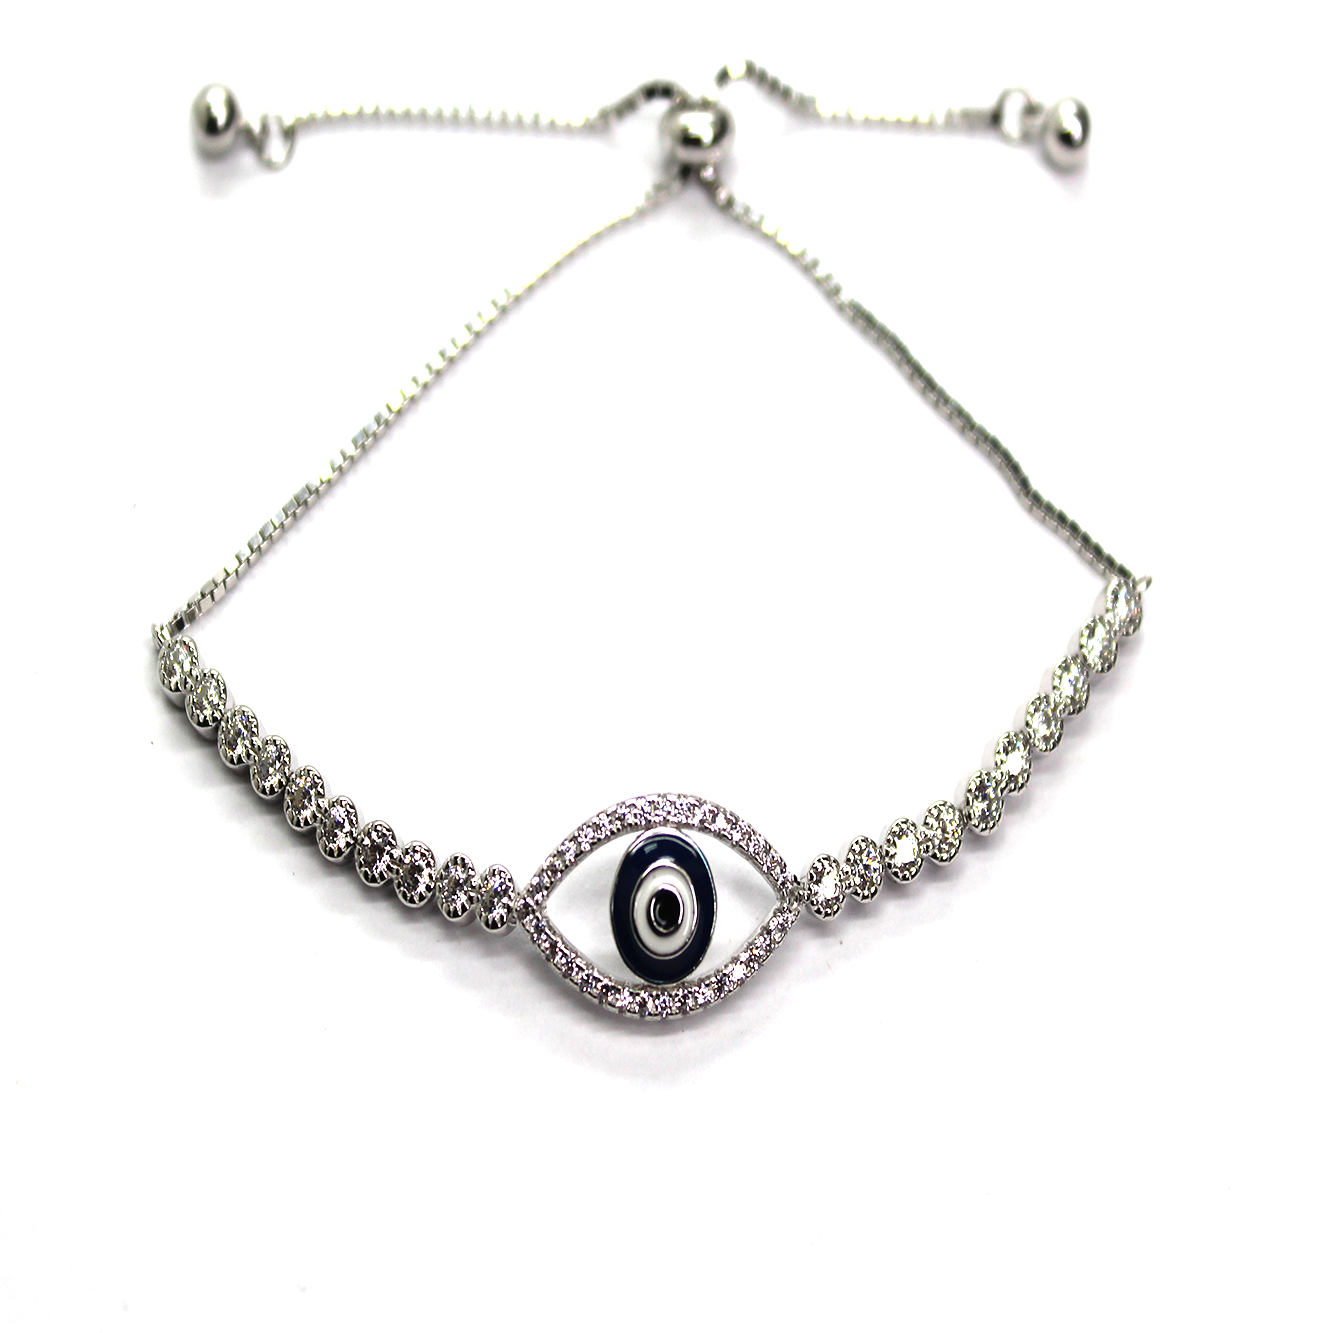 Adjustable Evil Eye Bracelet, Sterling Silver with Rhodium, Baby Blue or Dark Blue 10x20mm (eye), 3mm (CZ) - Butterfly Beads